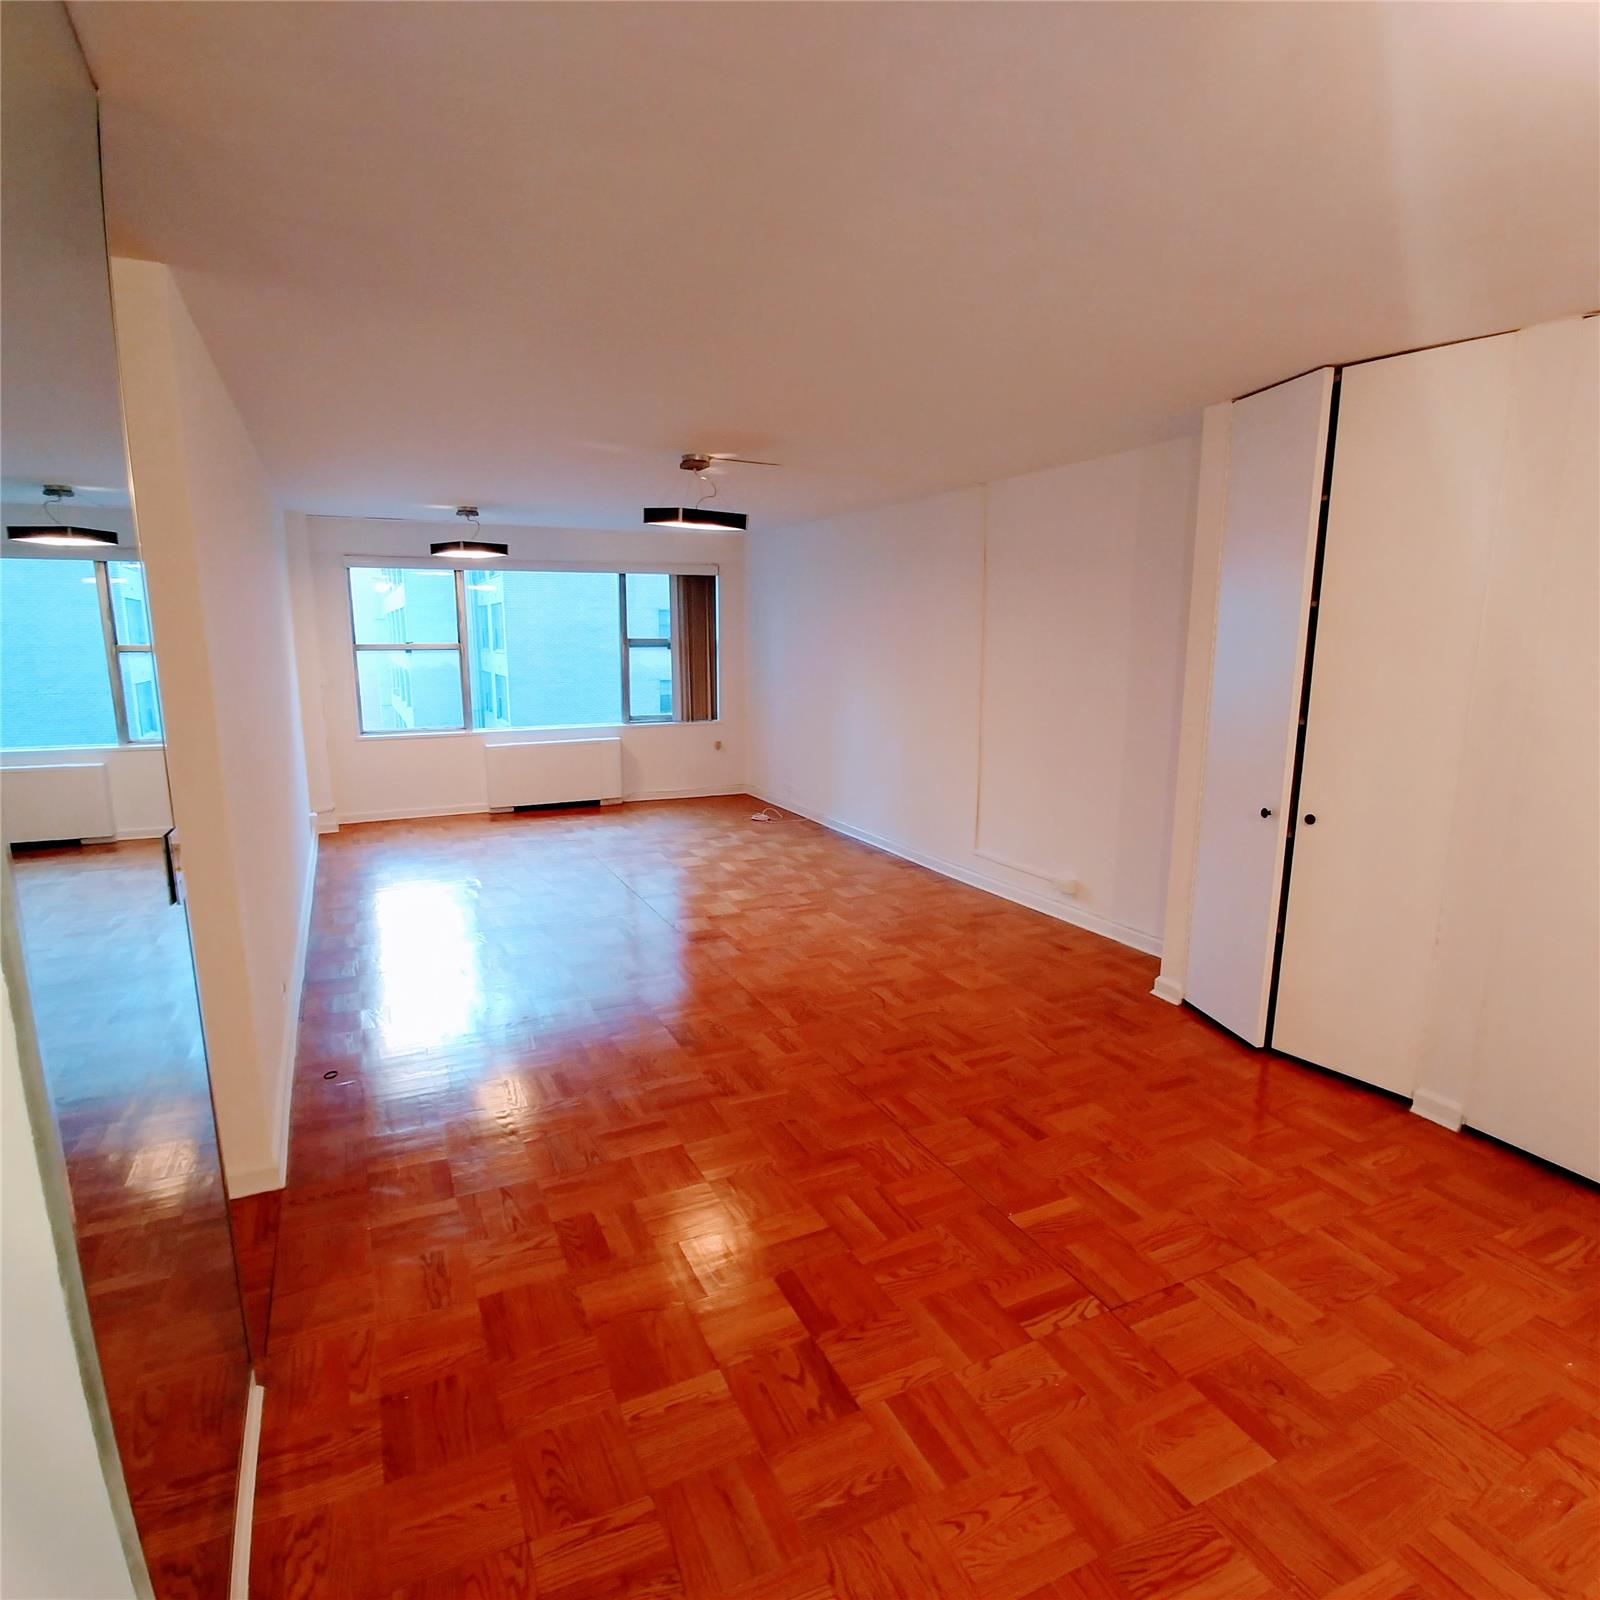 77 West 55th Street Midtown West New York NY 10019